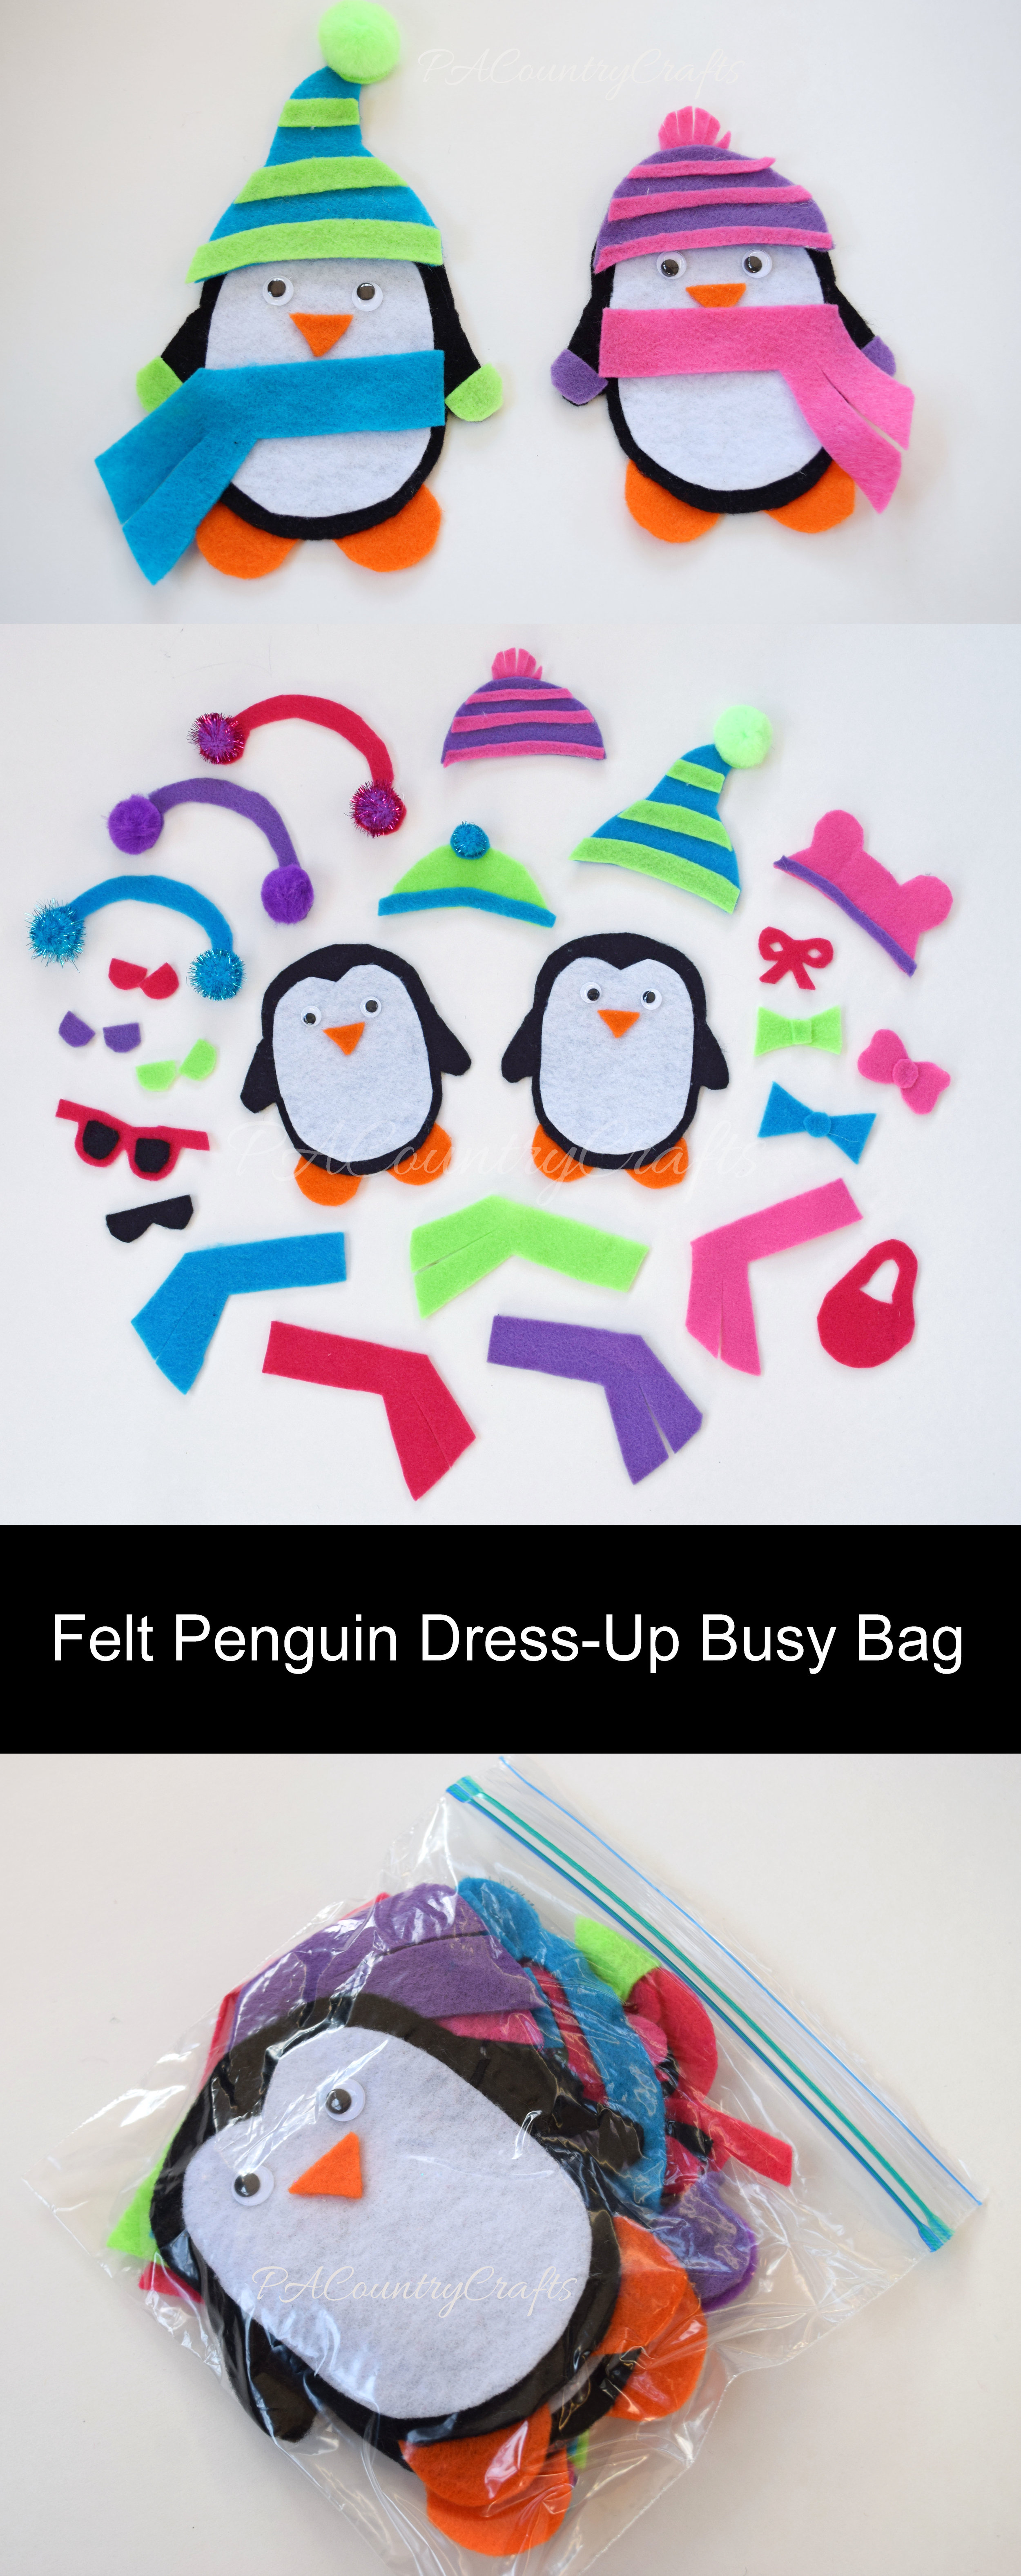 Make this penguin dress-up toddler busy bag.